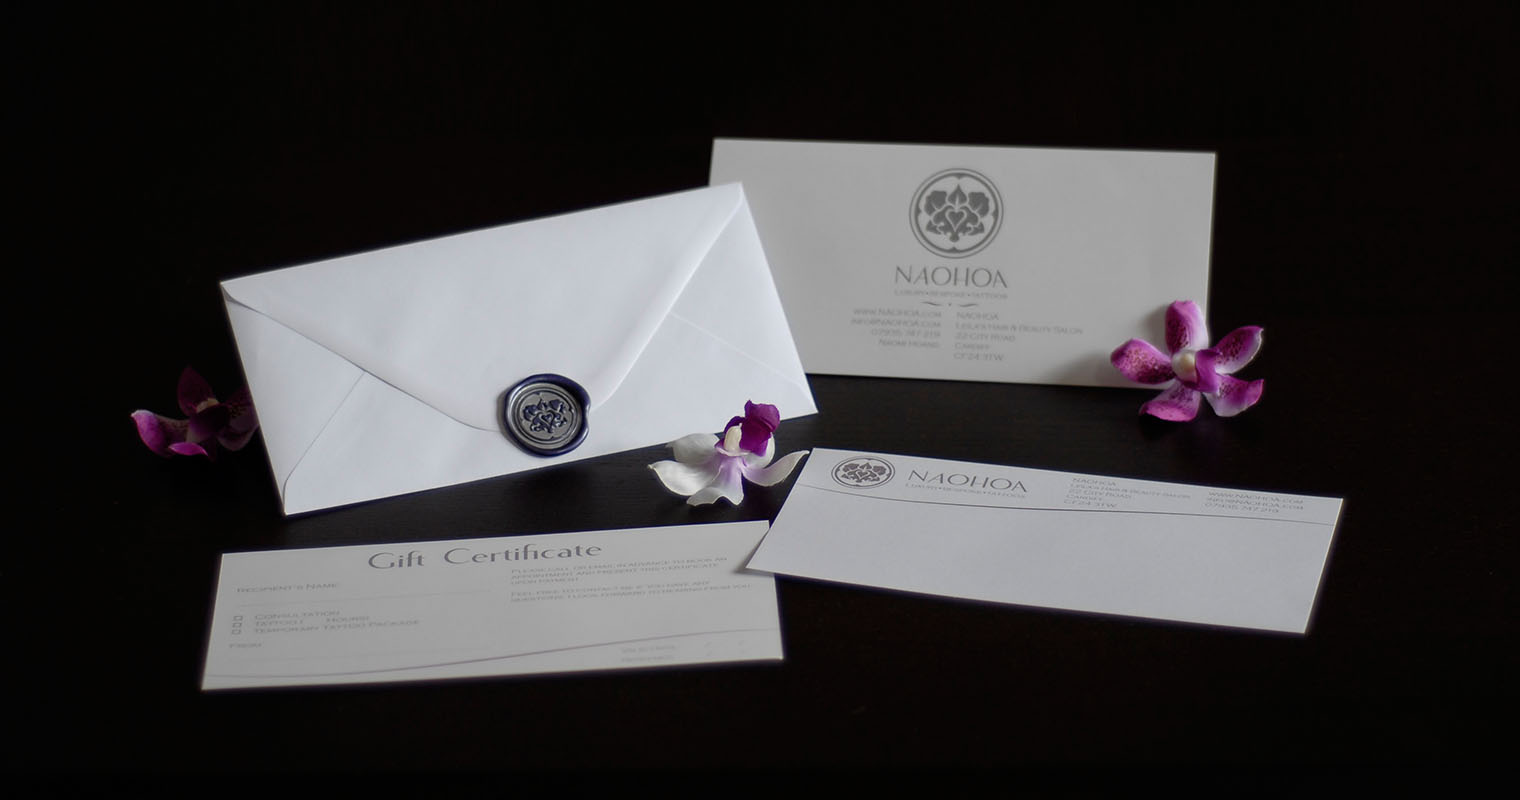 Gift Certificates with a hand-made wax seal